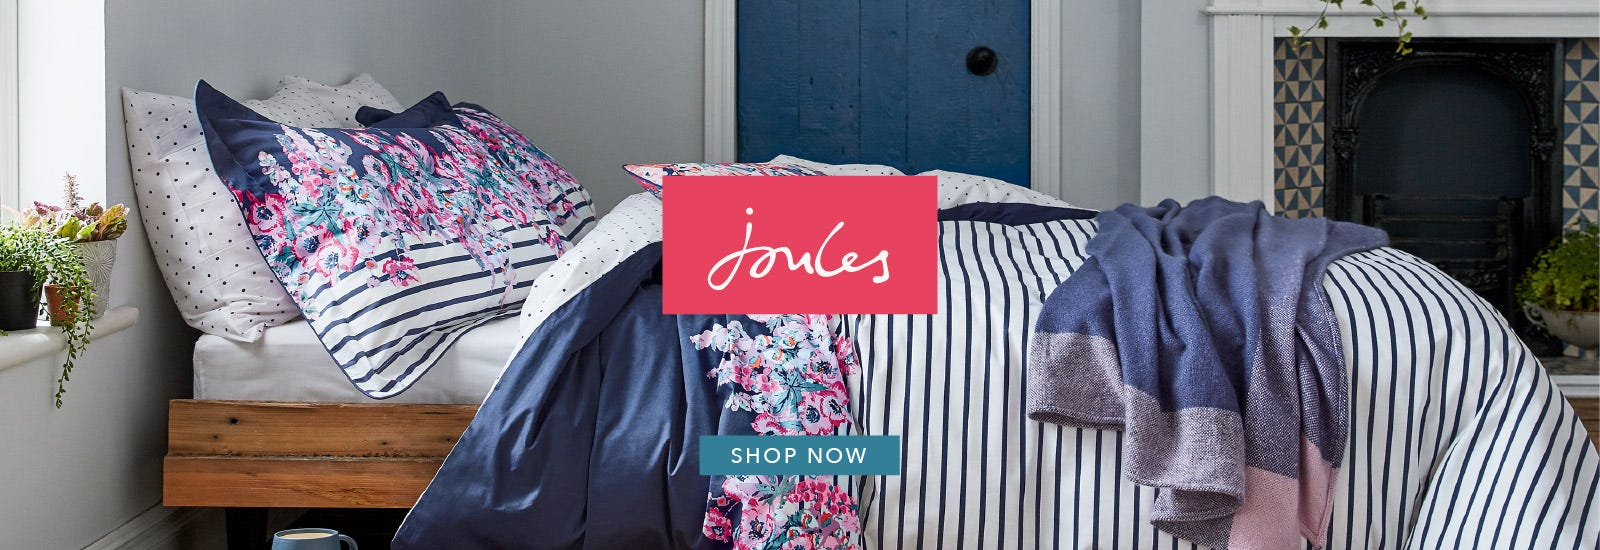 Joules Cottage Garden Border Stripe